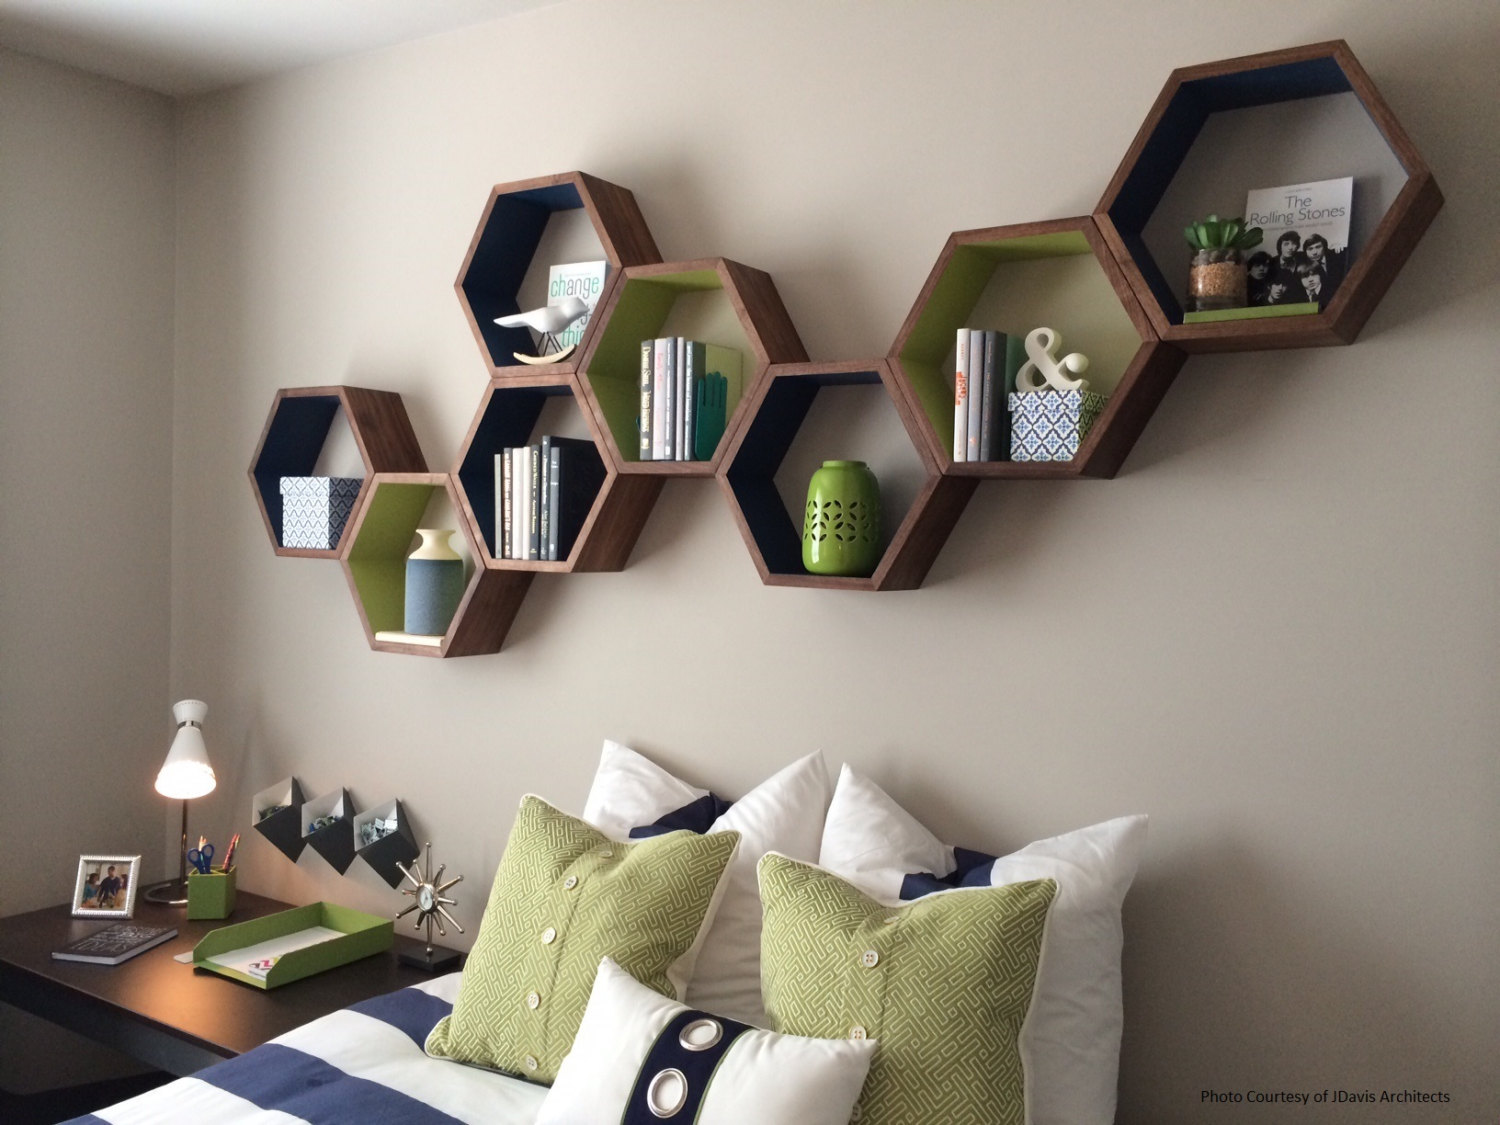 20 Creative Ways To Decorate Your Home With Unexpected ... on Creative Wall Decor Ideas  id=39620